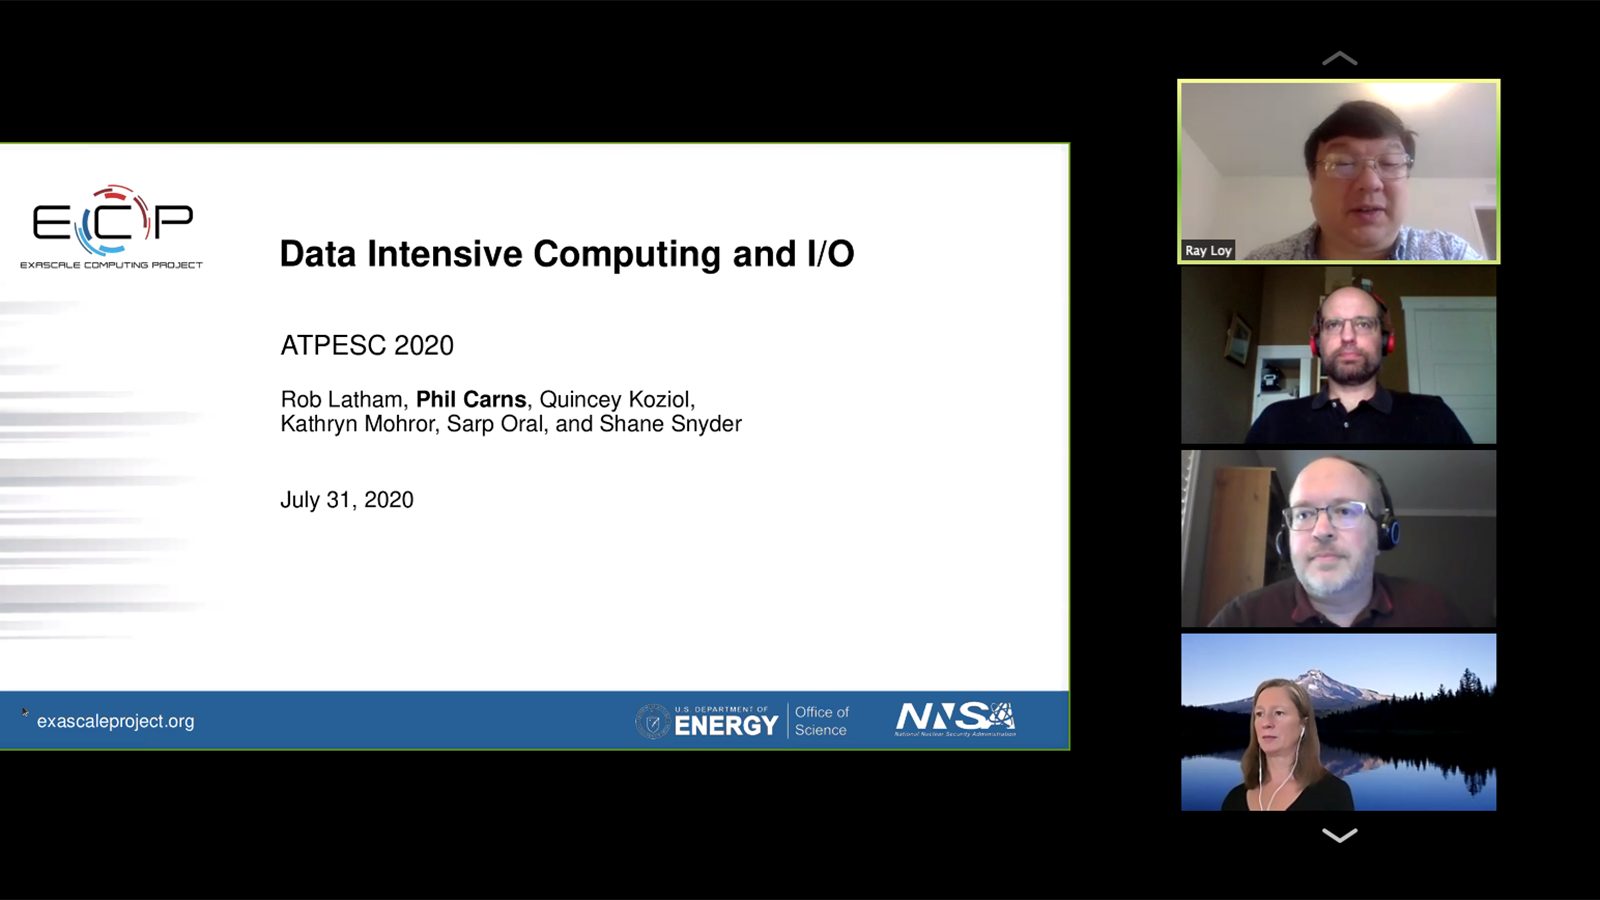 Ray Loy (Argonne), Rob Latham (Argonne), Phil Carns (Argonne) and Kathryn Mohror (Lawrence Livermore National Laboratory) kick off a day of training on data-intensive computing and I/O. (Image by Argonne National Laboratory.)